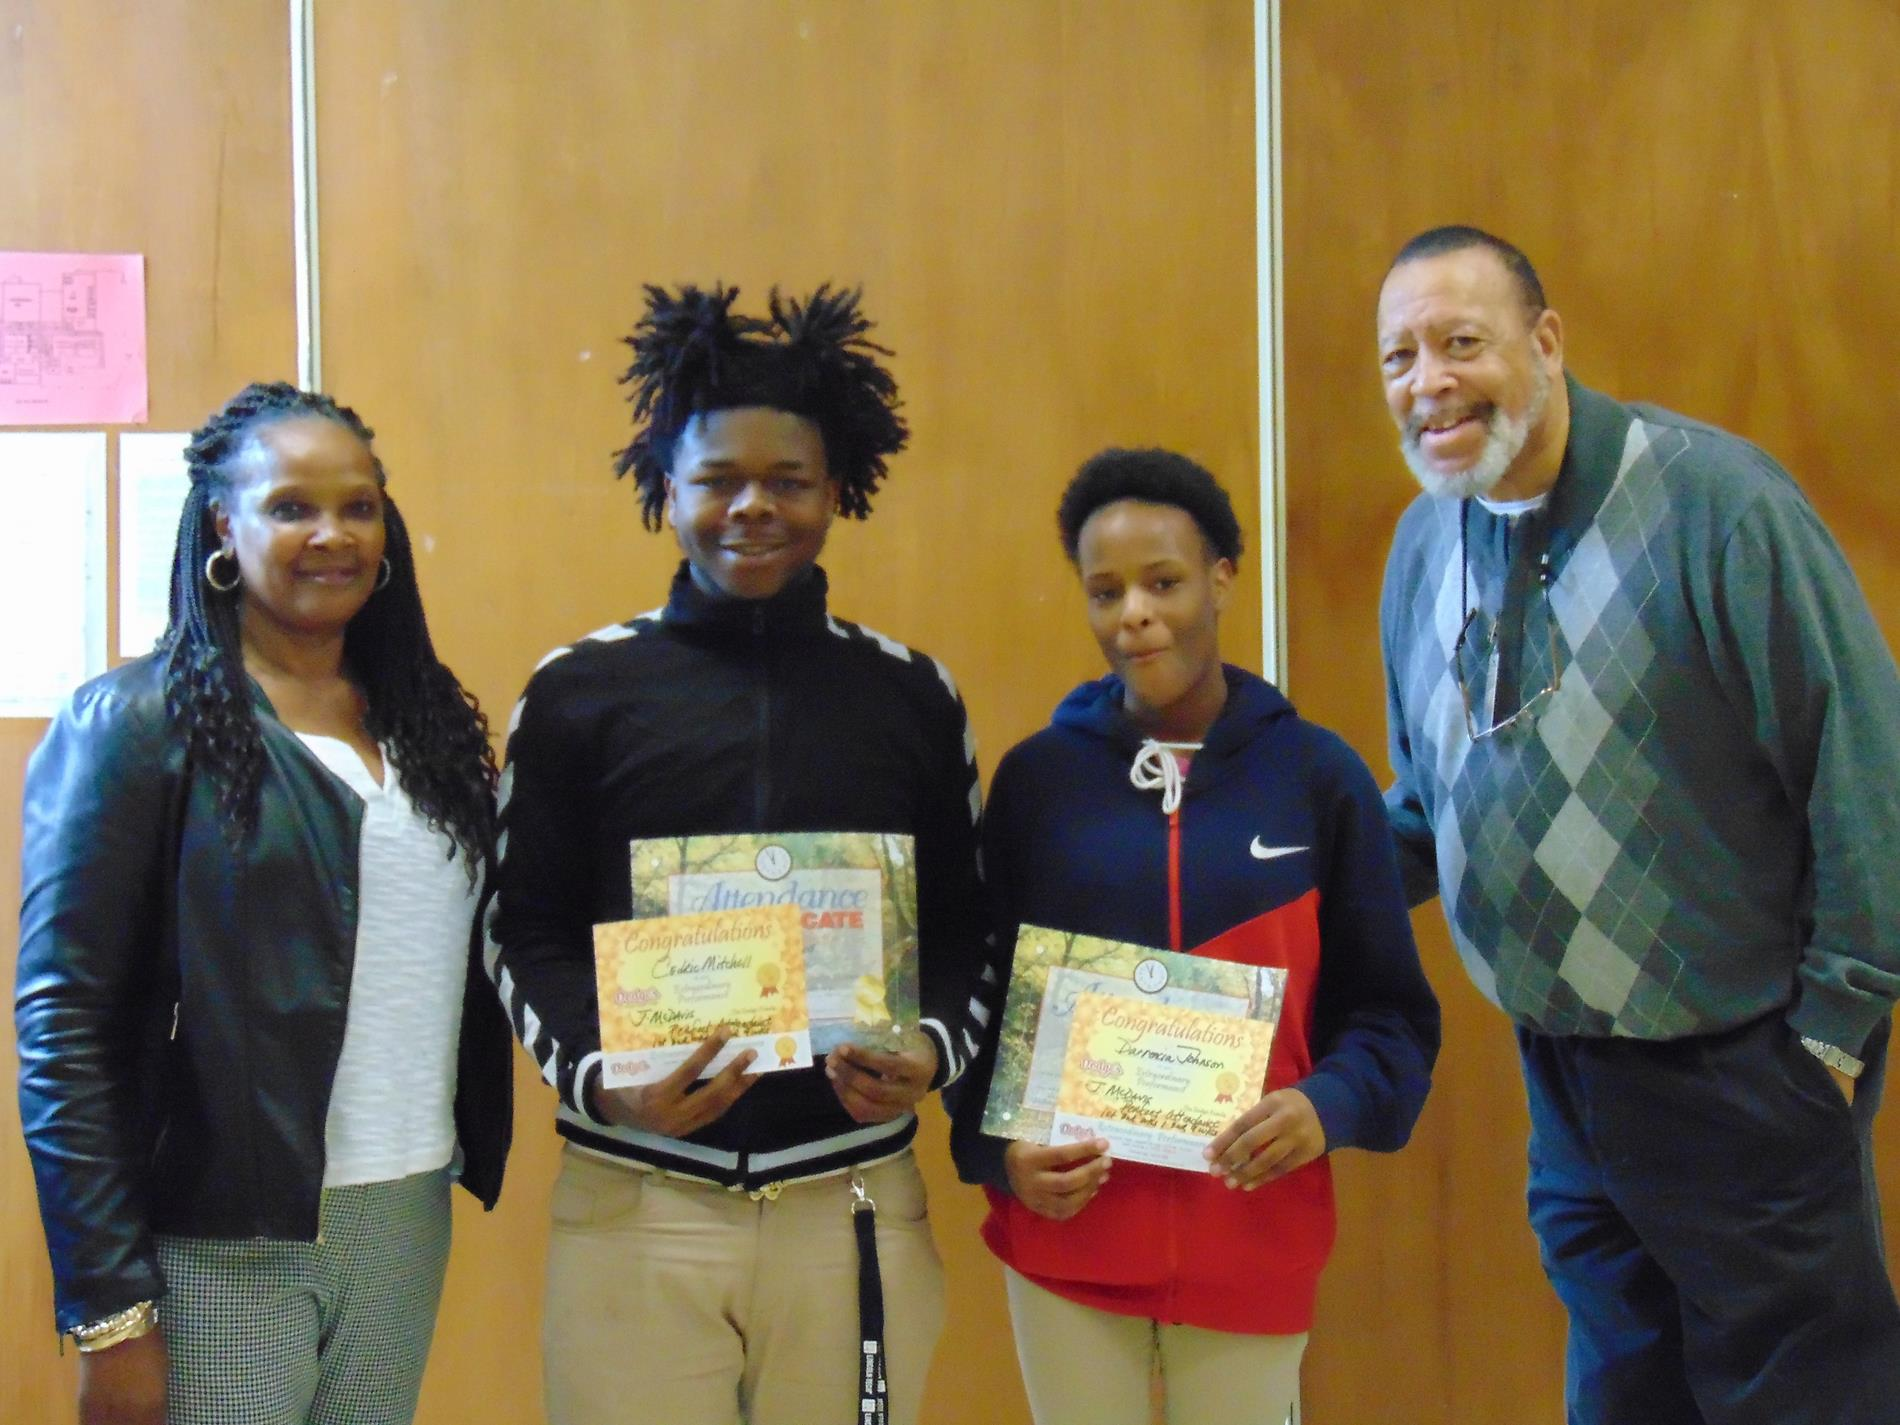 Cedric Mitchell and Darrencia Johnson receive improved attendance awards